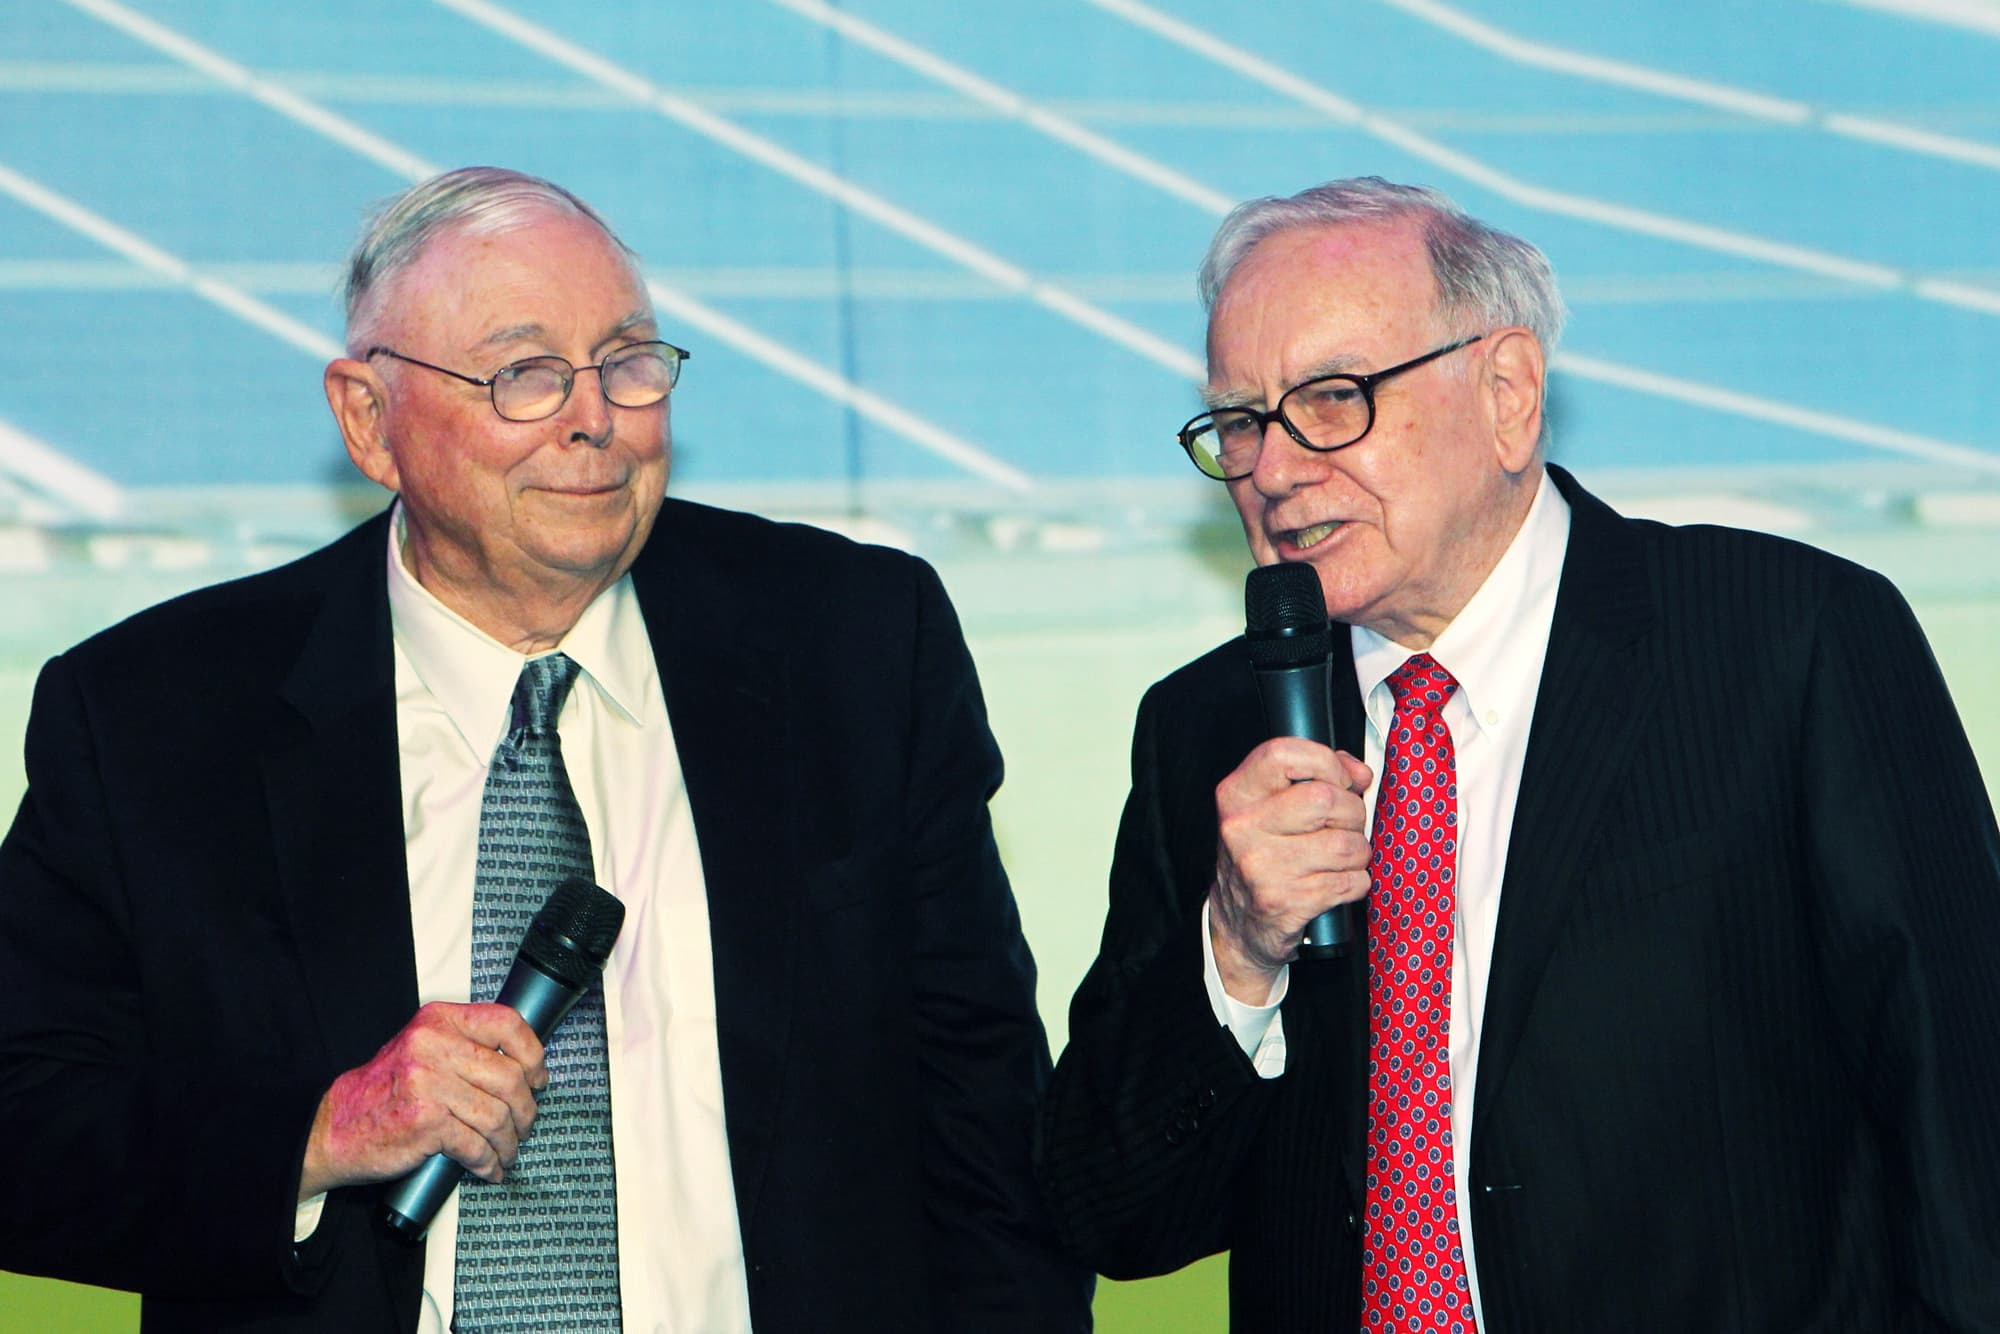 Here's what Charlie Munger says all young people should know about choosing a career